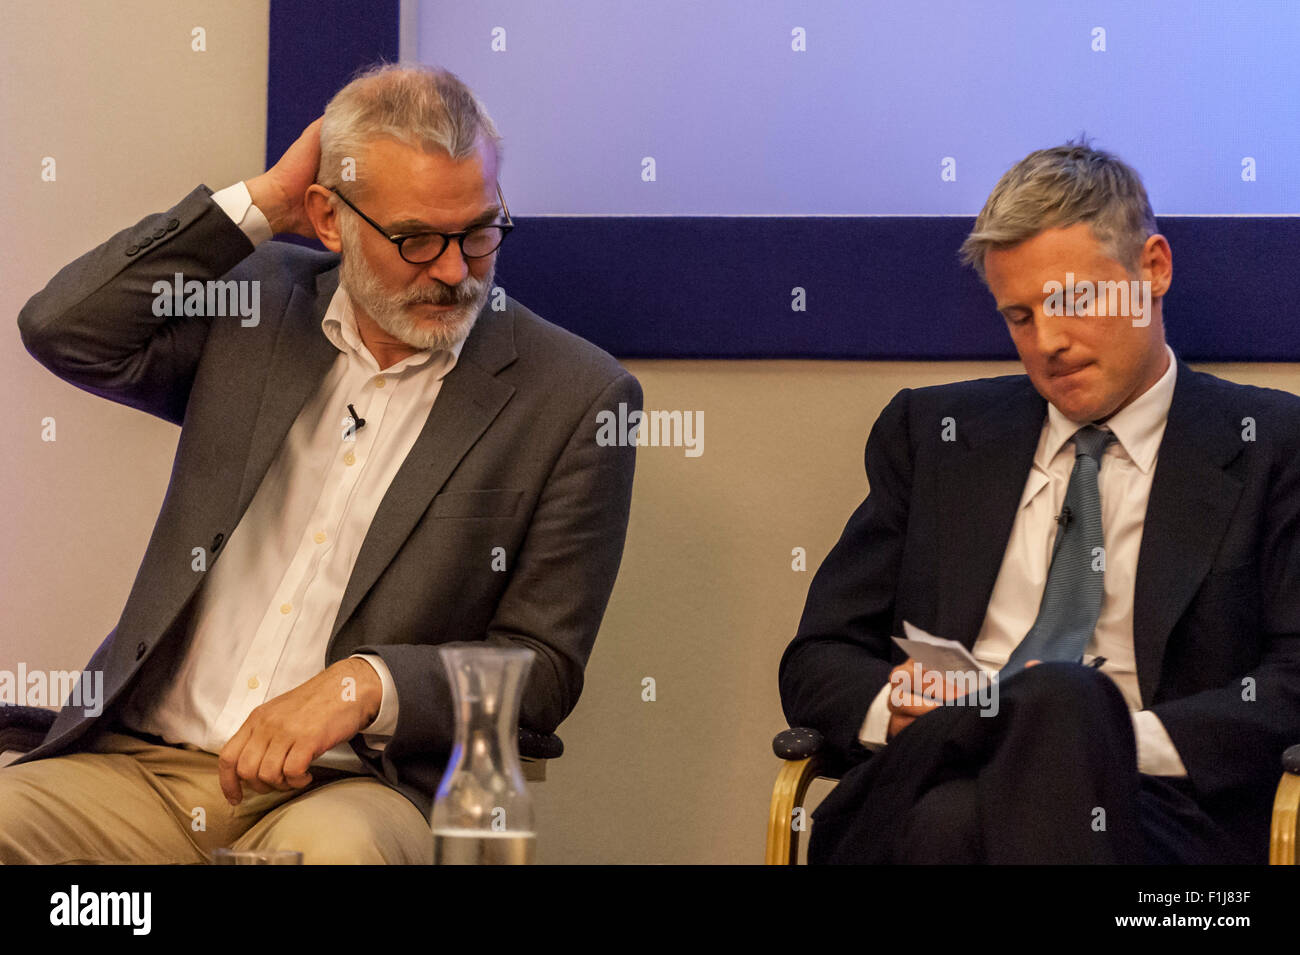 London, UK.  2 September 2015.  Andrew Boff and Zac Goldsmith look on as Centre for London and Prospect Magazine - Stock Image